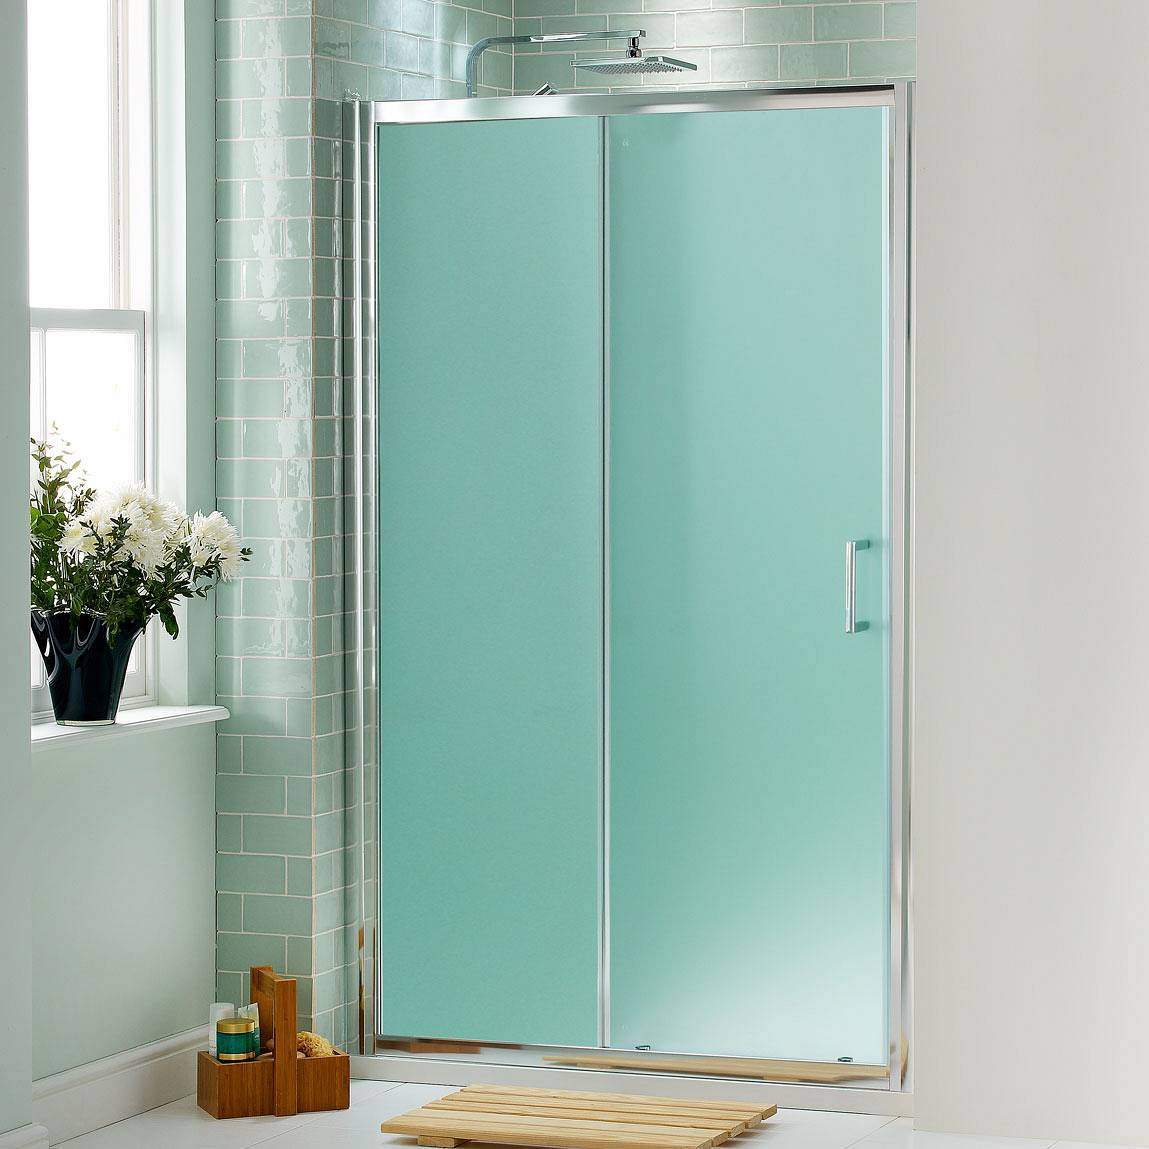 21 creative glass shower doors designs for bathrooms for Bathroom designs glass